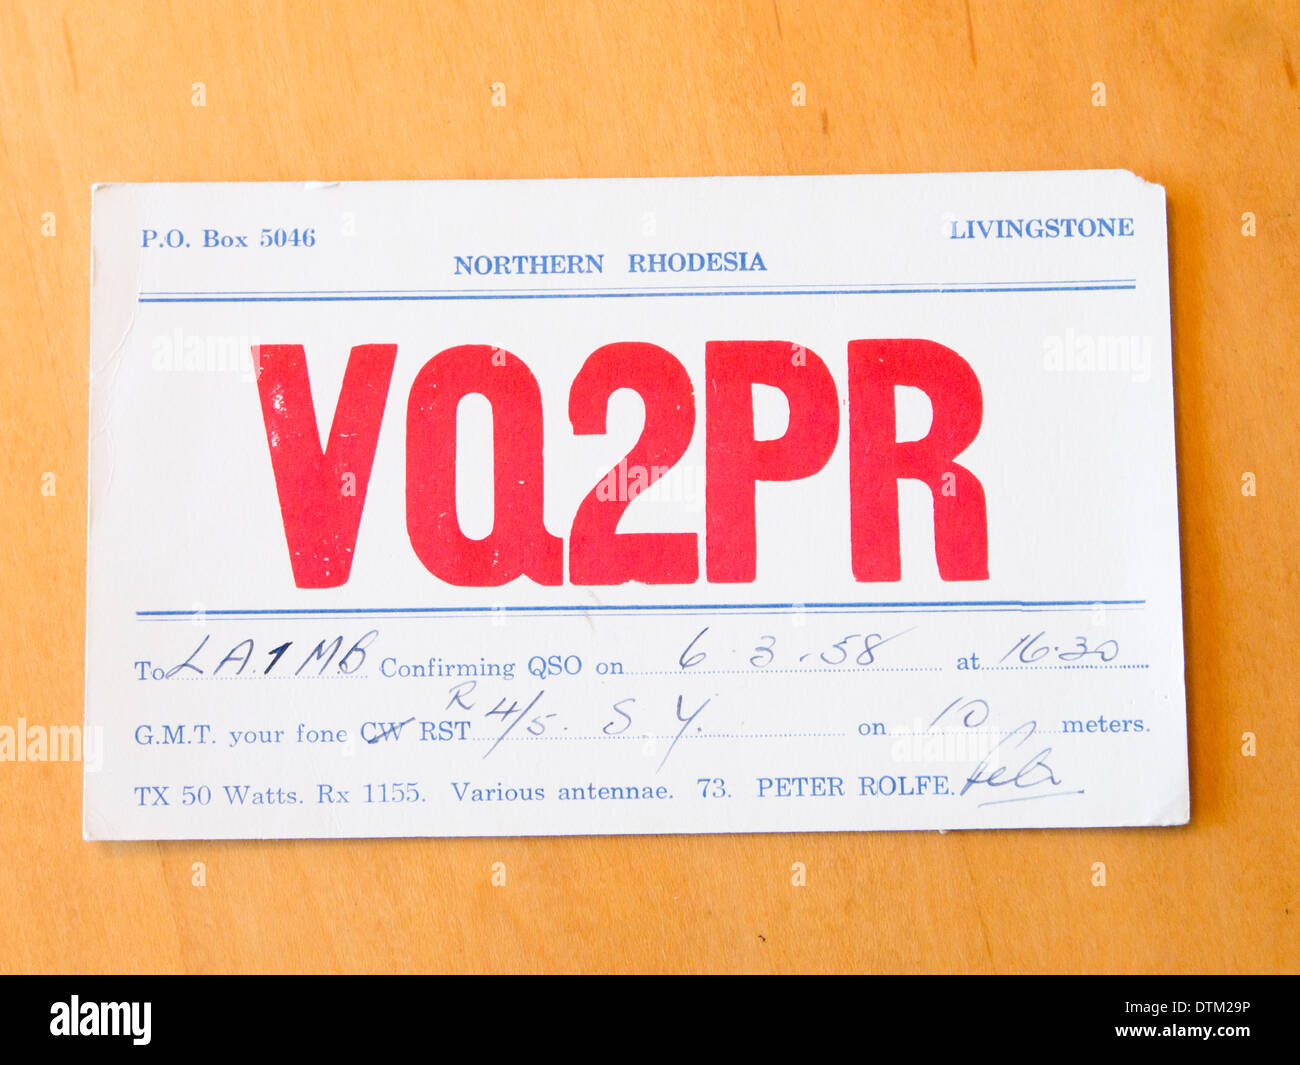 Vintage qsl card sent between radio amateurs - ham operators - on first contact, from Northern Rhodesia to Norway in 1958 - Stock Image